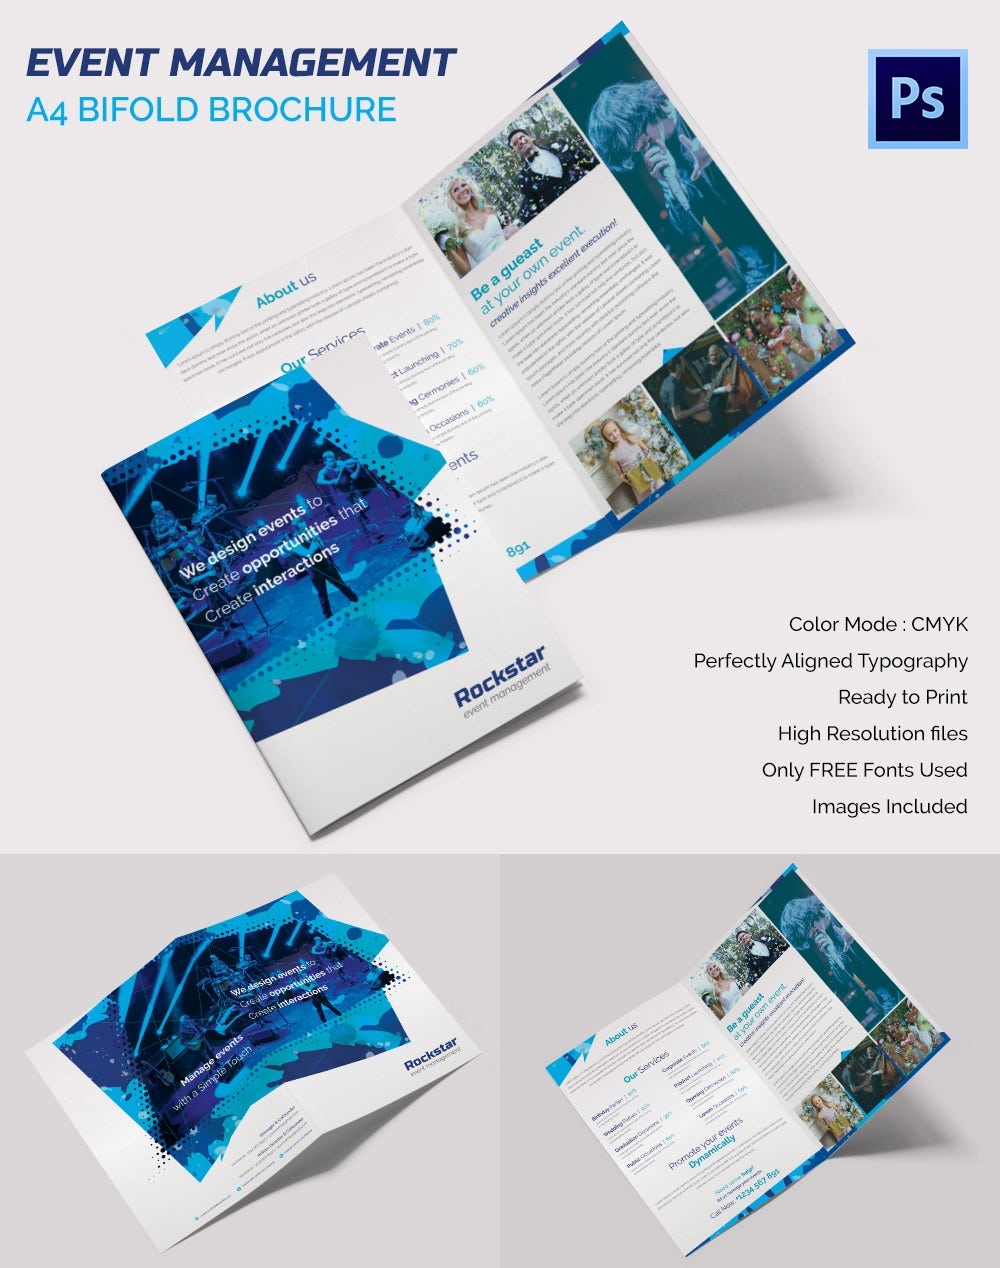 bifold brochure template - 16 event brochure templates psd designs free